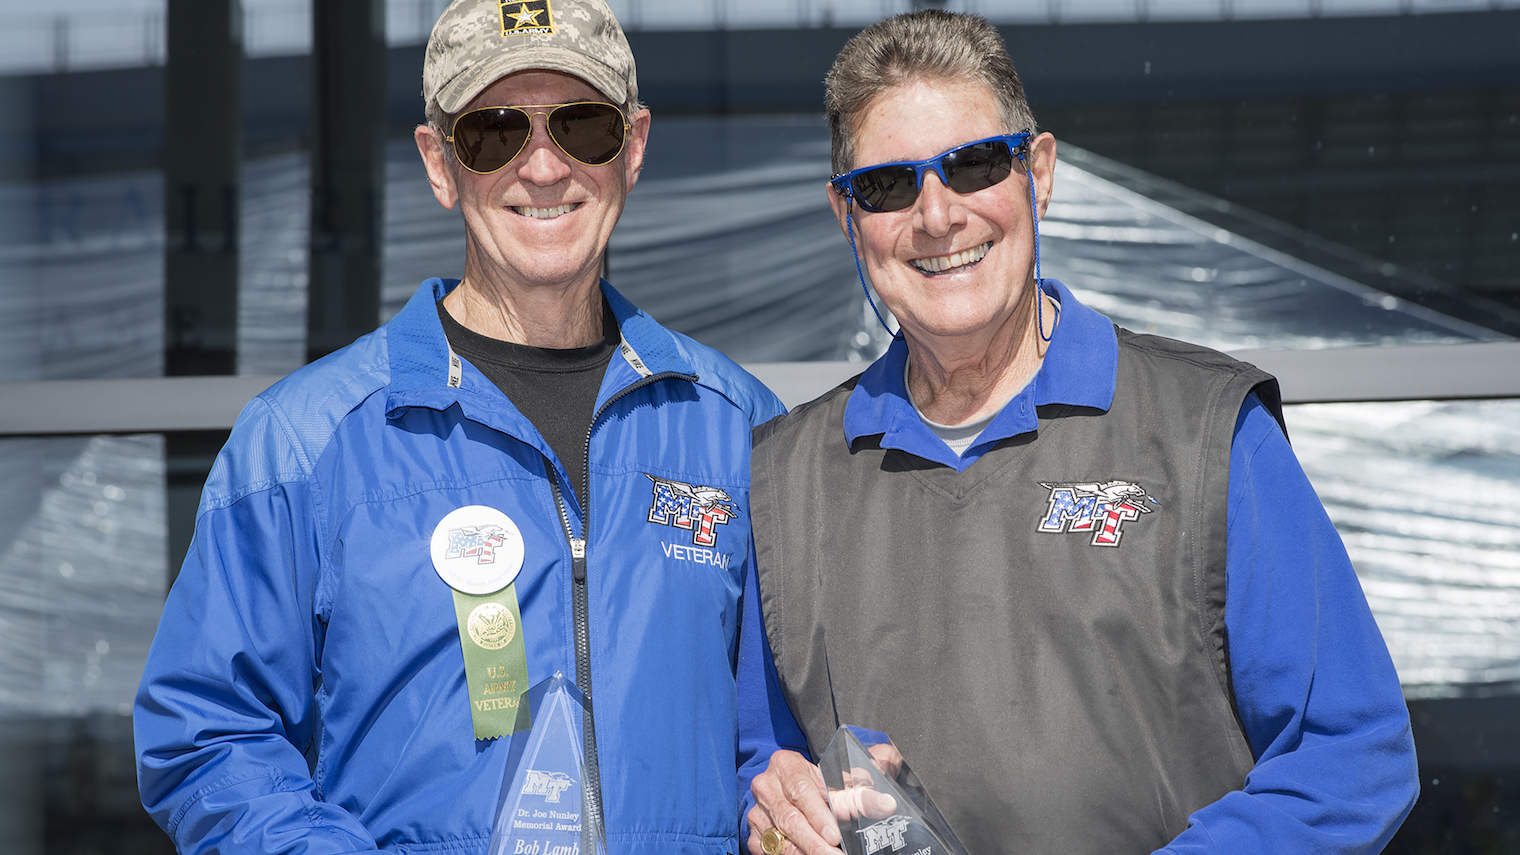 Bob Lamb and Bud Morris at the 2016 Salute to Veterans